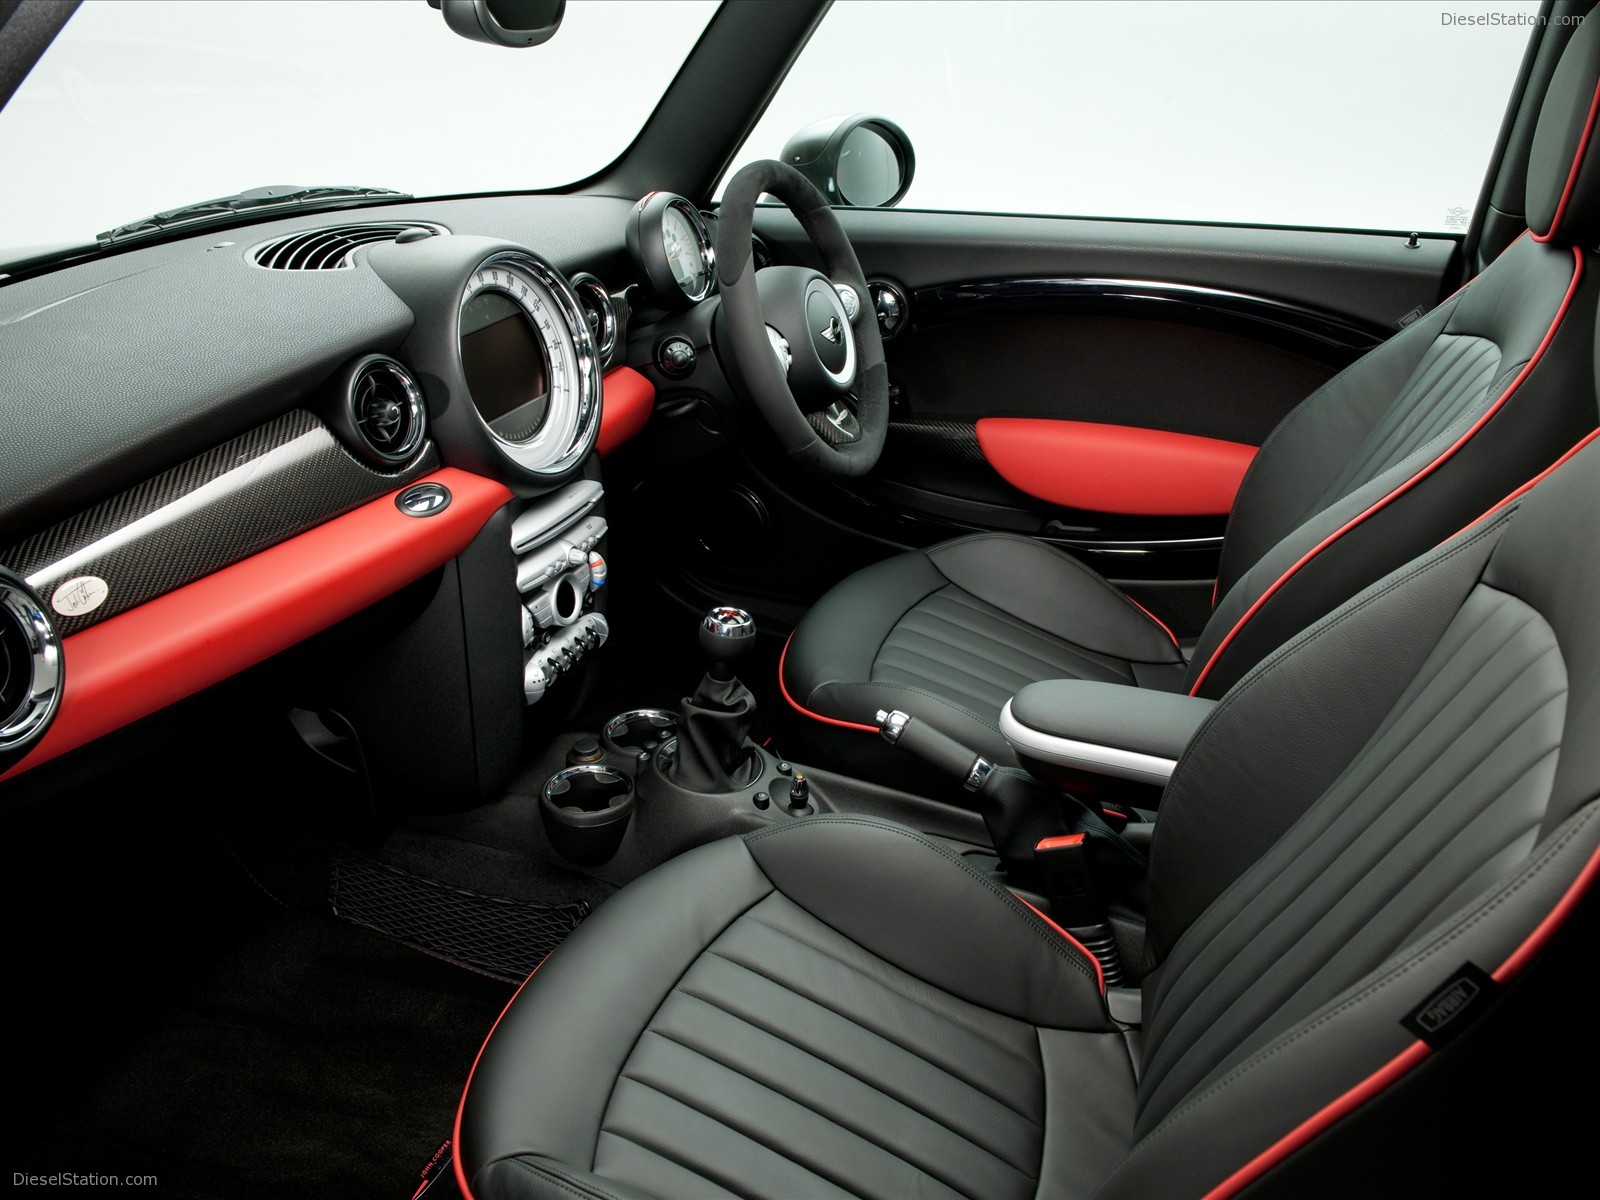 MINI John Cooper Works image #14